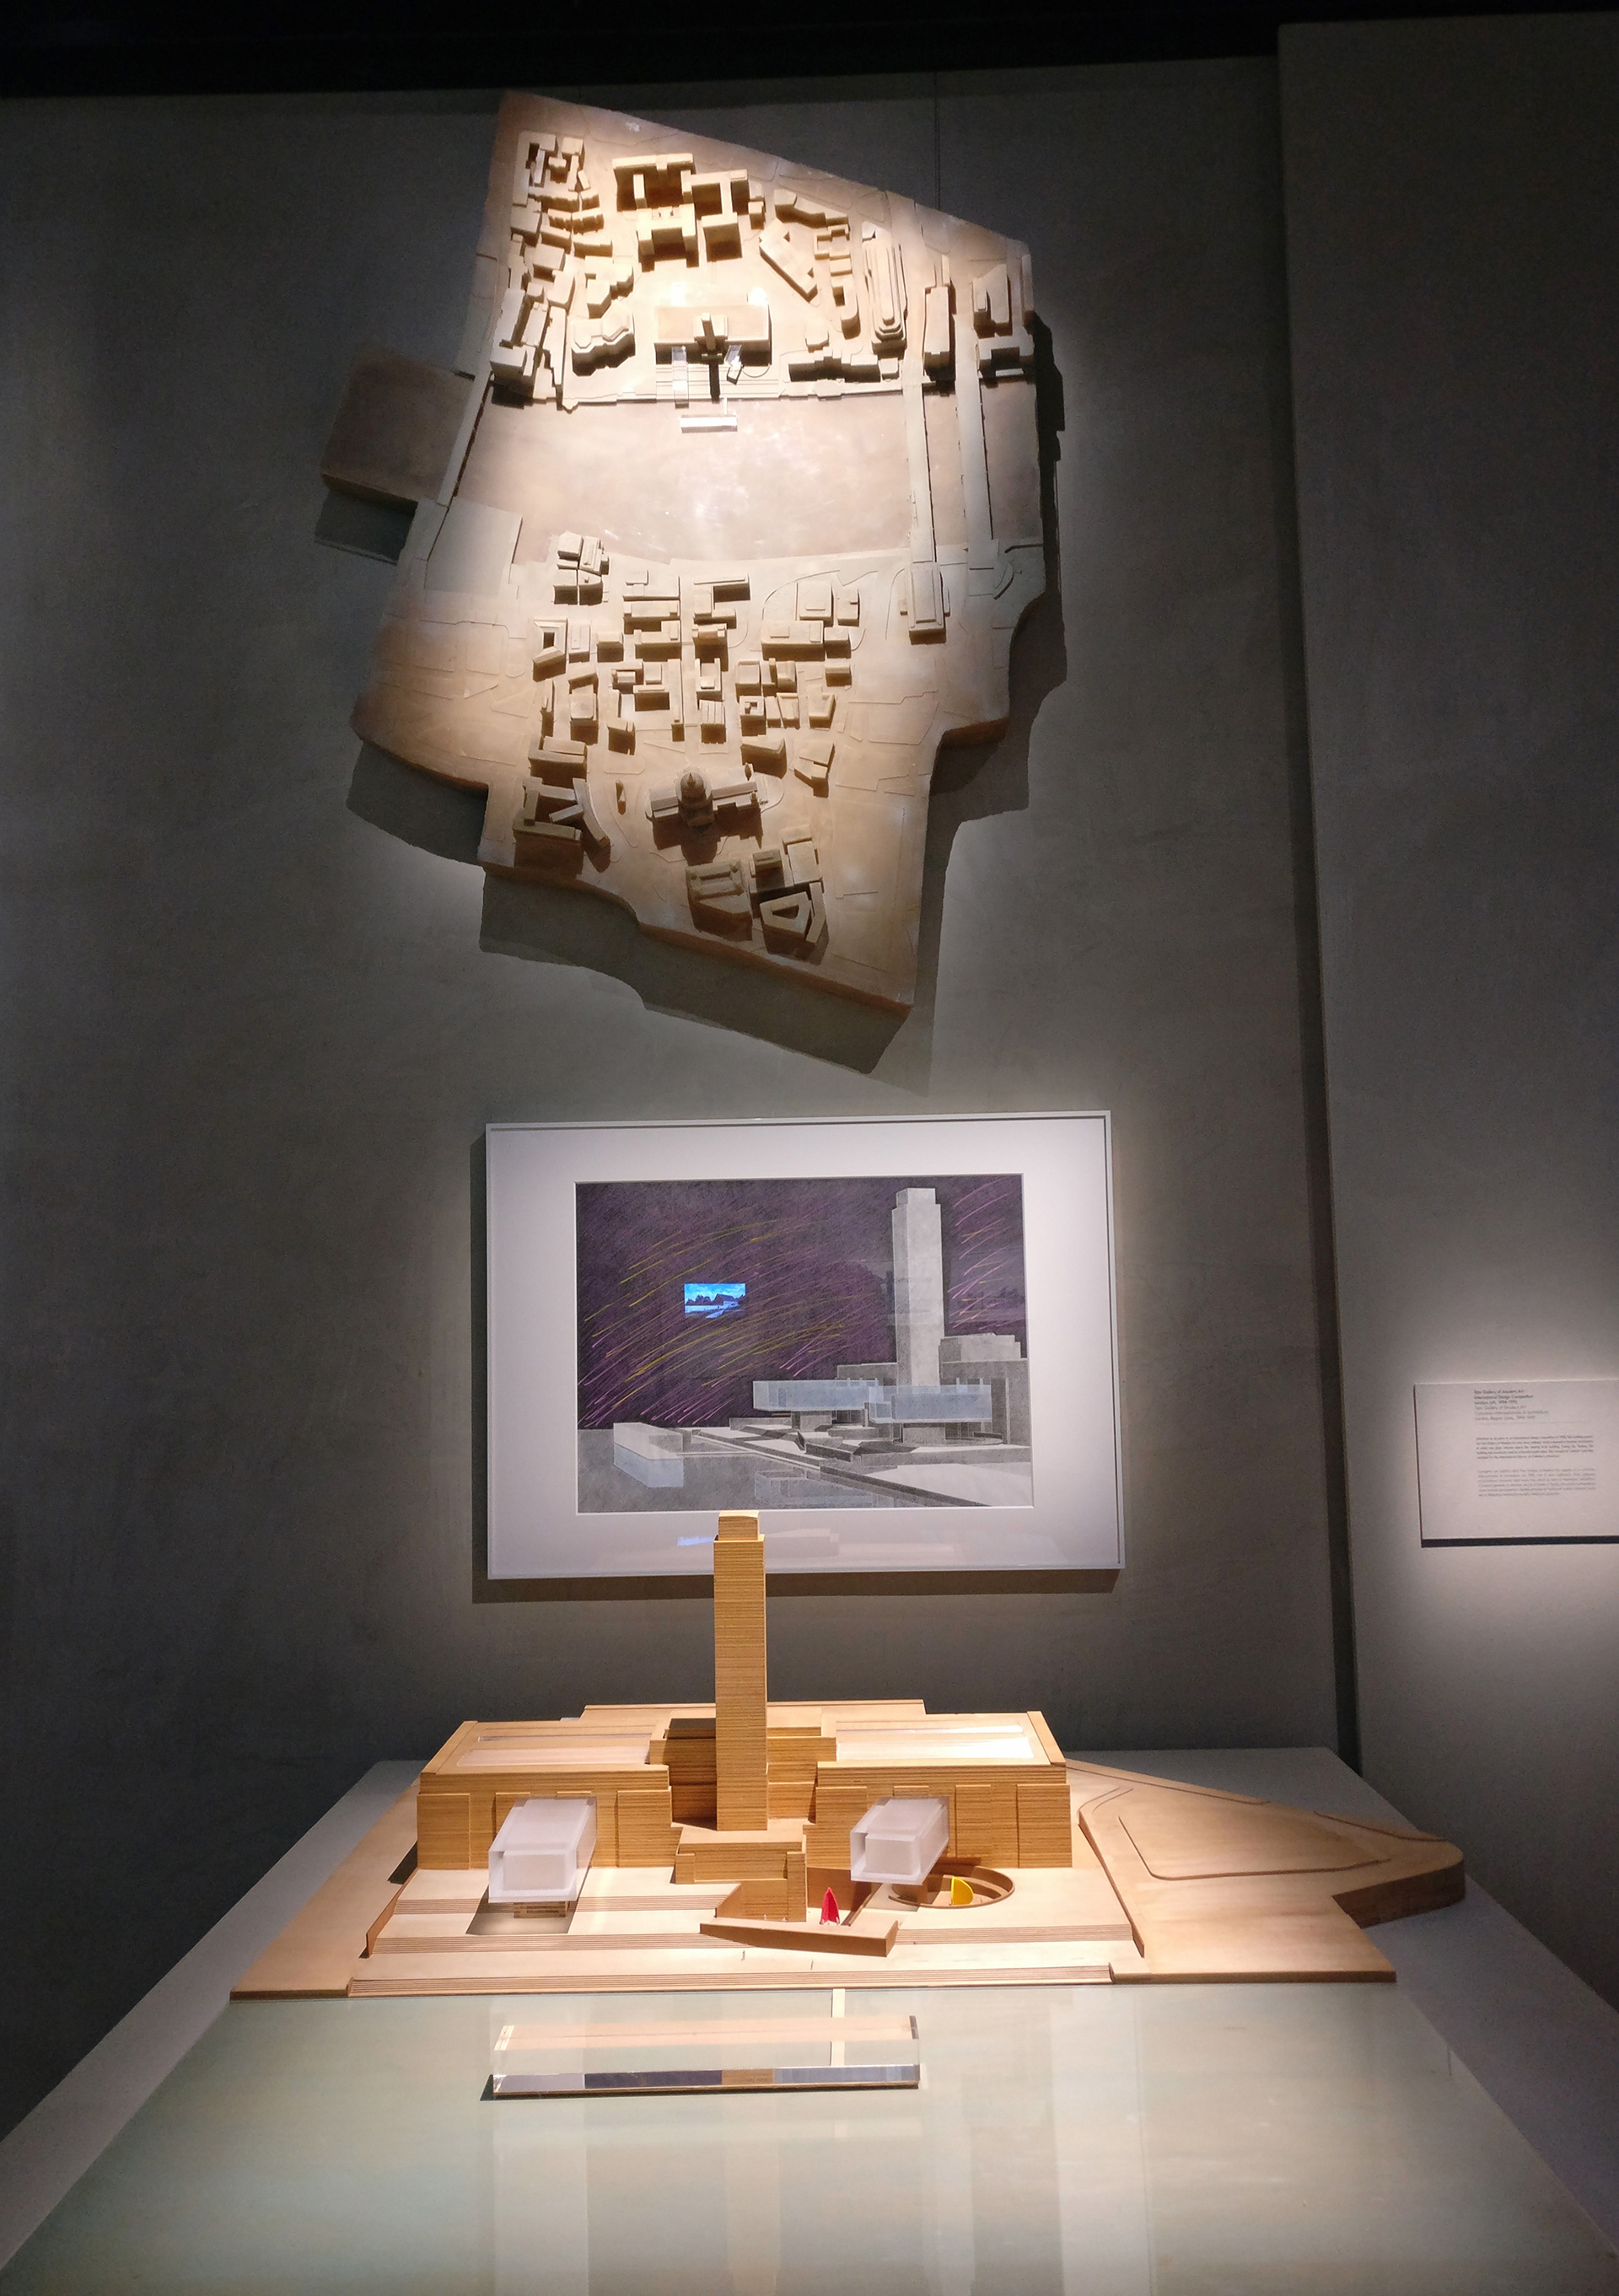 Photographs, drawings, sketches and model at The Challenge | The Challenge| Tadao Ando| Armani/Silos| STIR